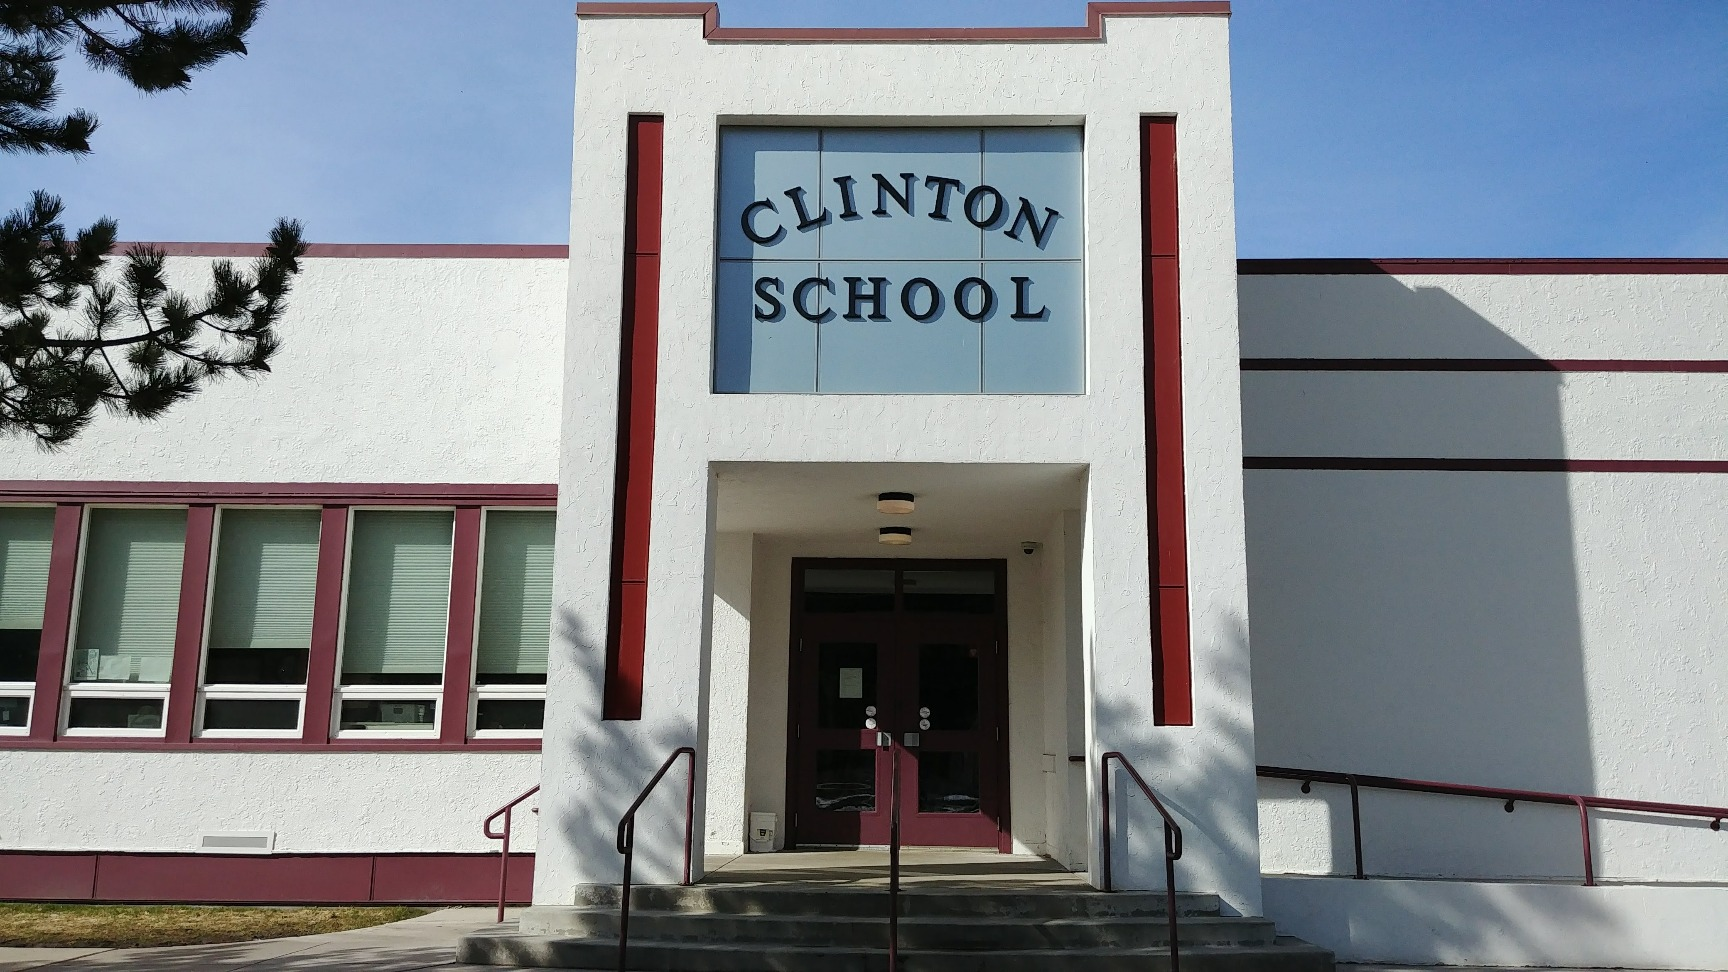 Clinton Elementary School entrance